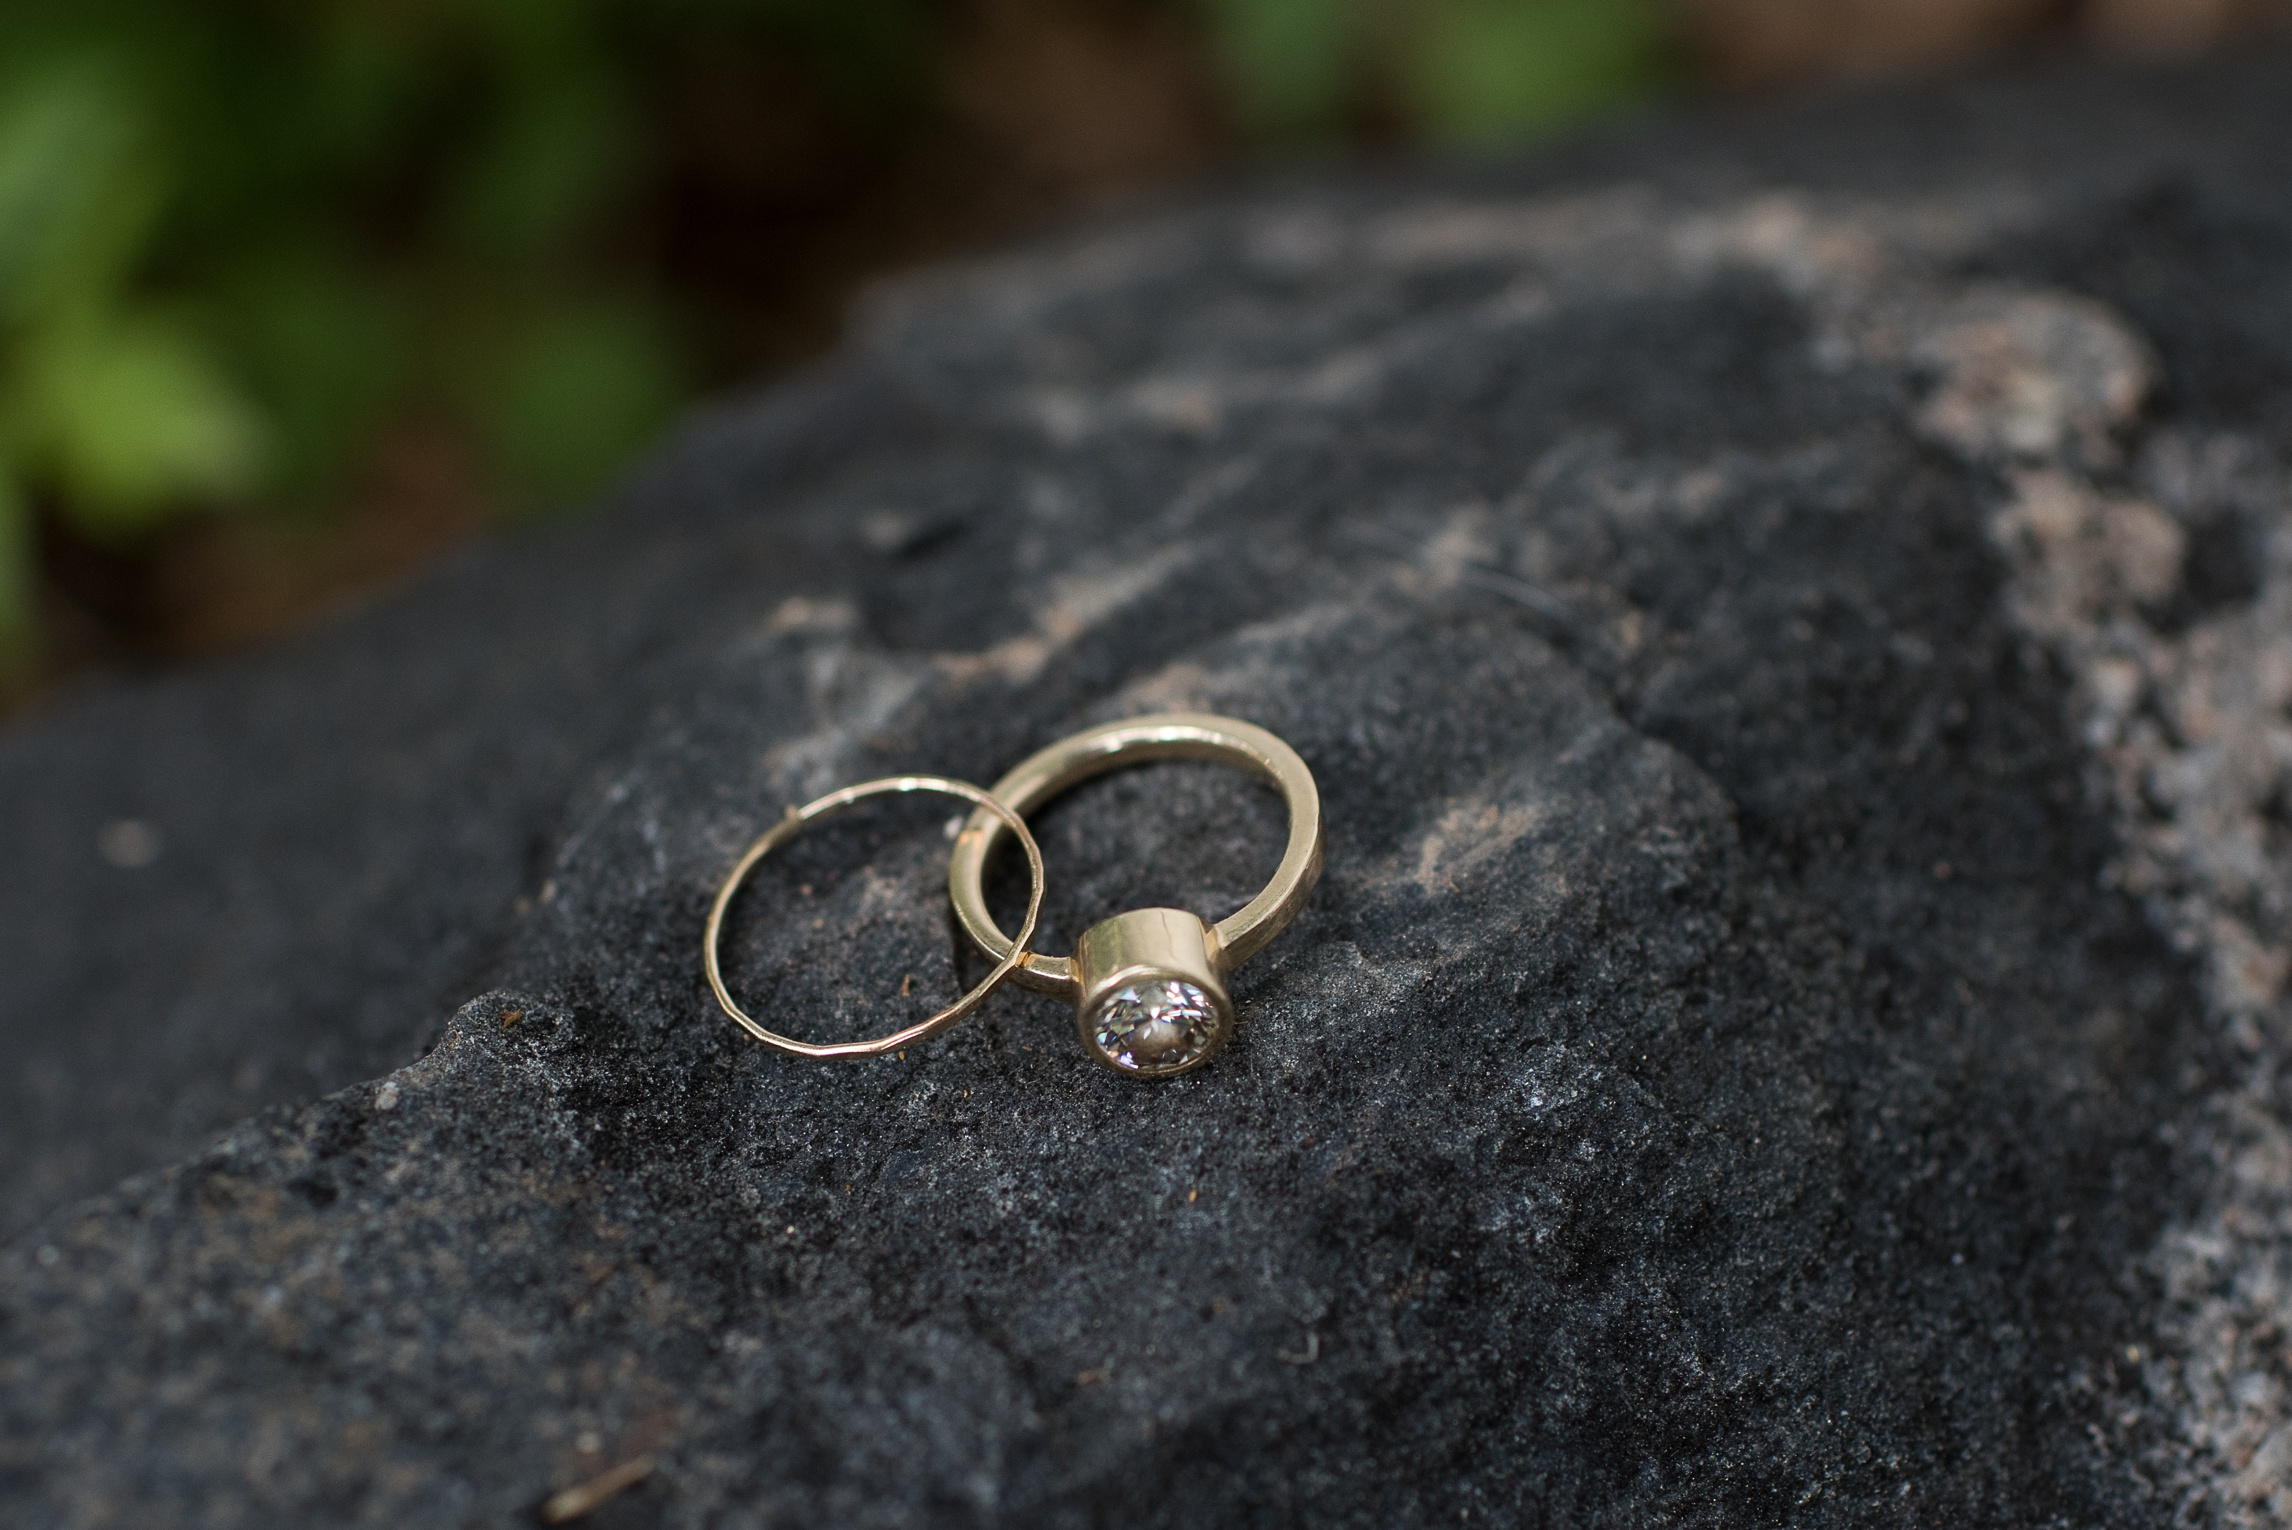 Bright gold wedding rings on a cool black rock. Wedding photography by Sonja Salzburg of Sonja K Photography.